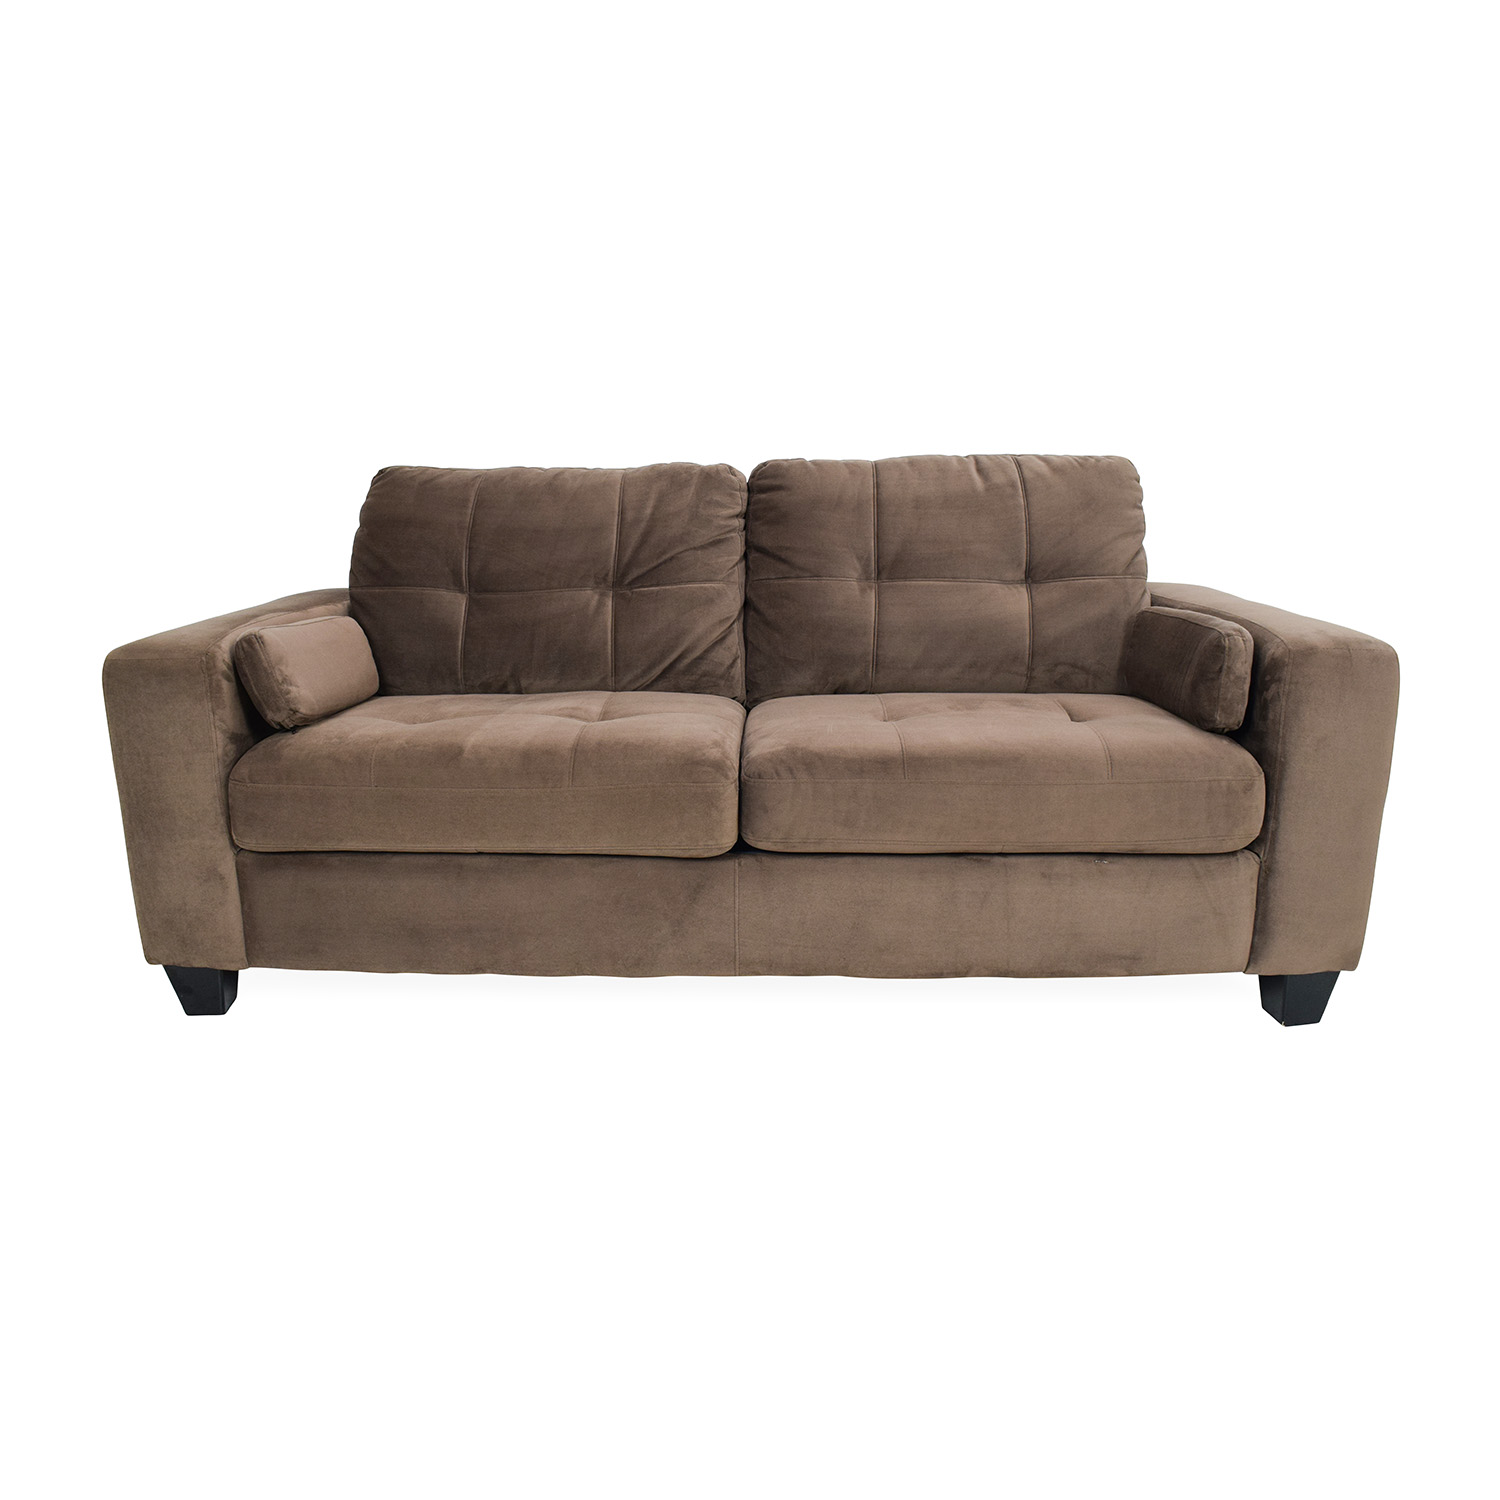 Jennifer Convertibles Sofa Beds Jennifer Convertibles Sofa Bed Repair Memsaheb Thesofa